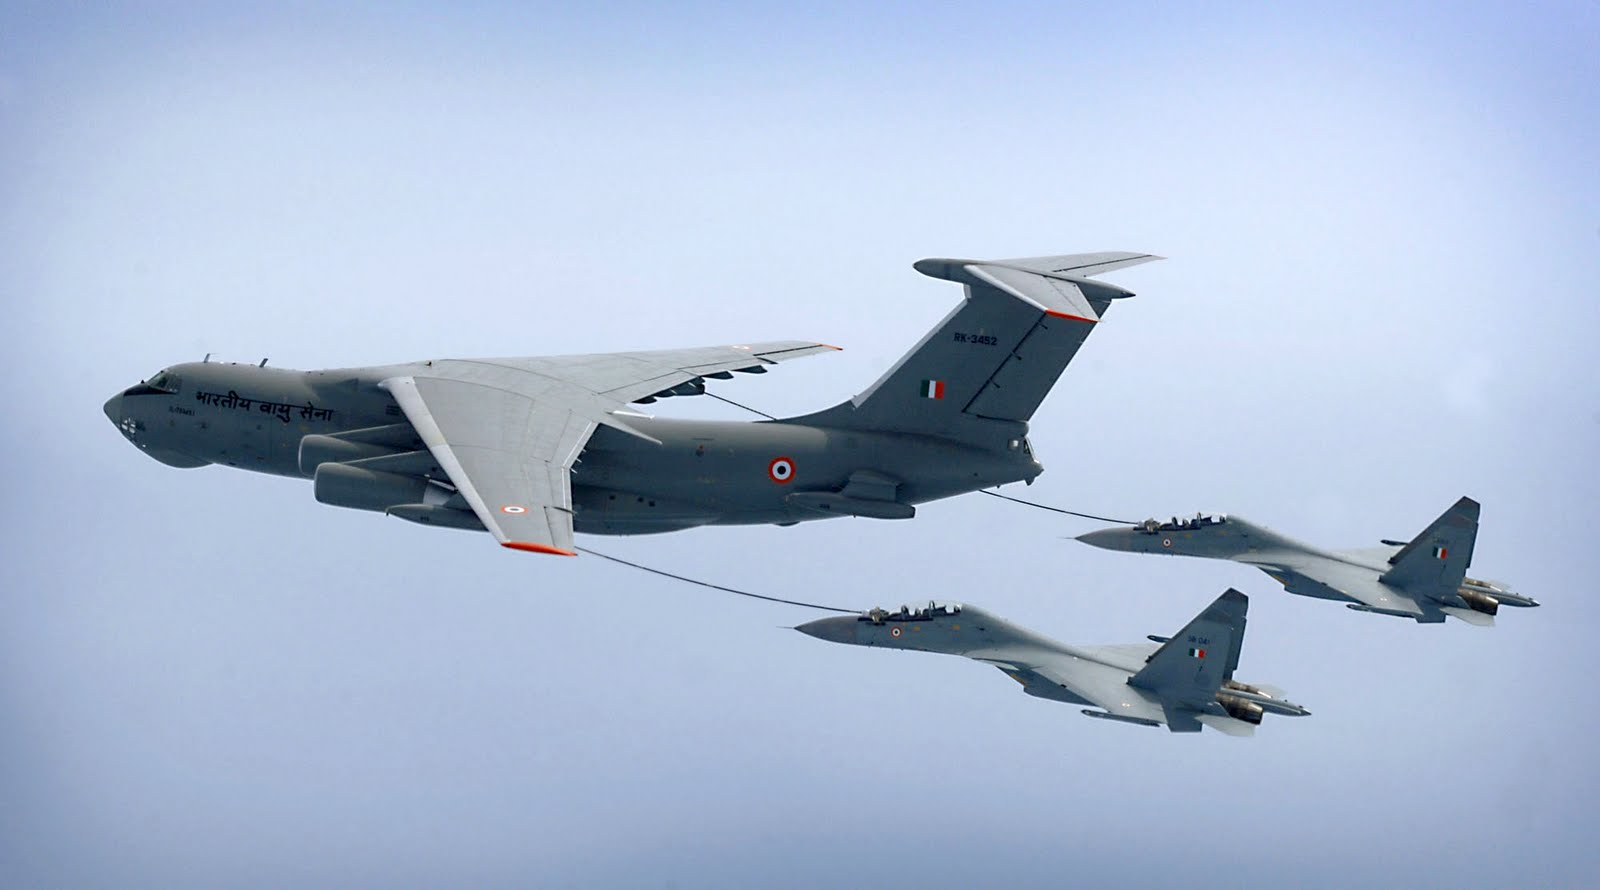 bangladesh is buying a dozen multirole fighters from russia | 21st